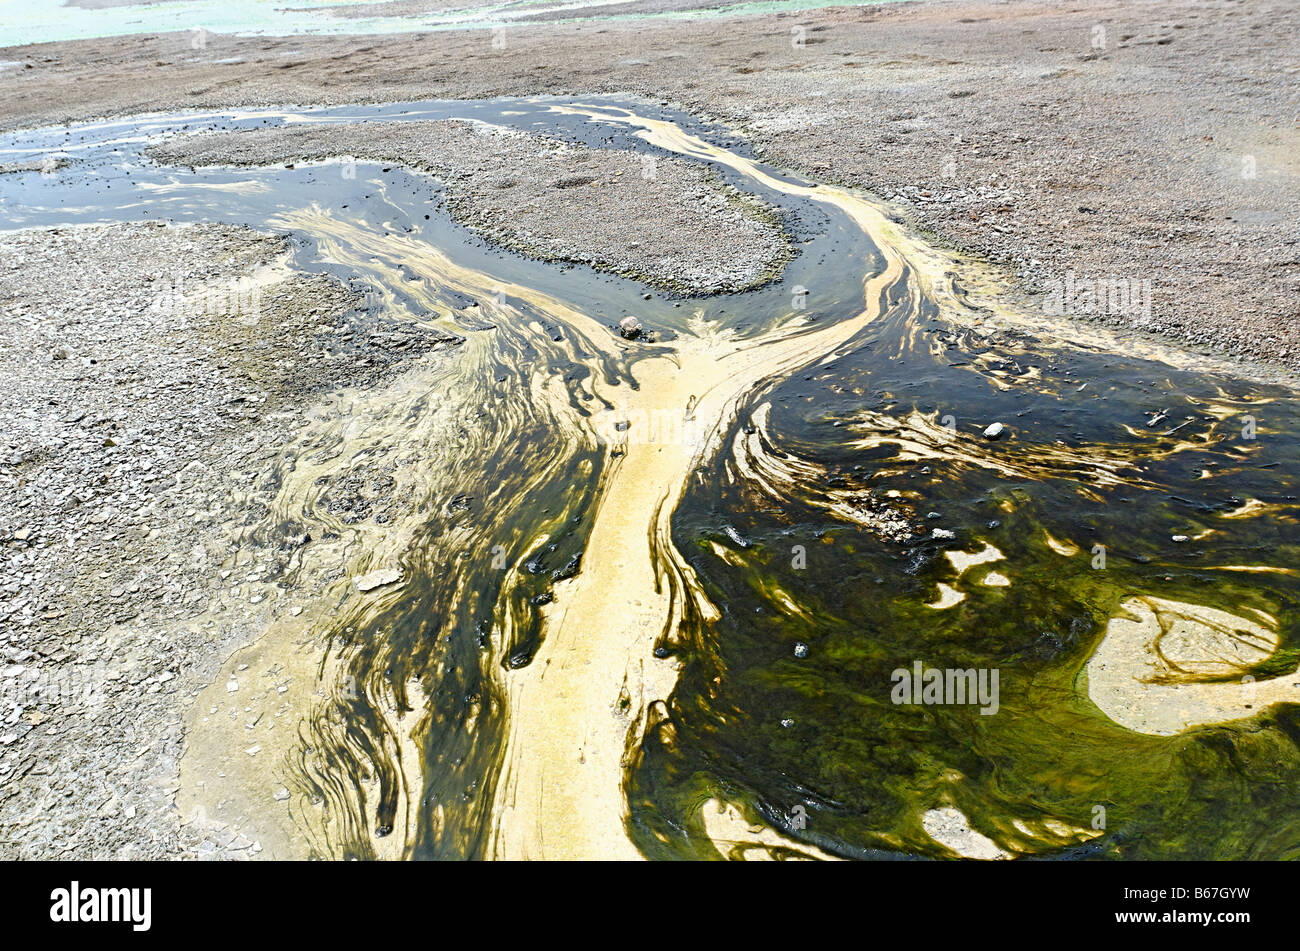 Runoff of a hot spring with algae and bacteria. - Stock Image